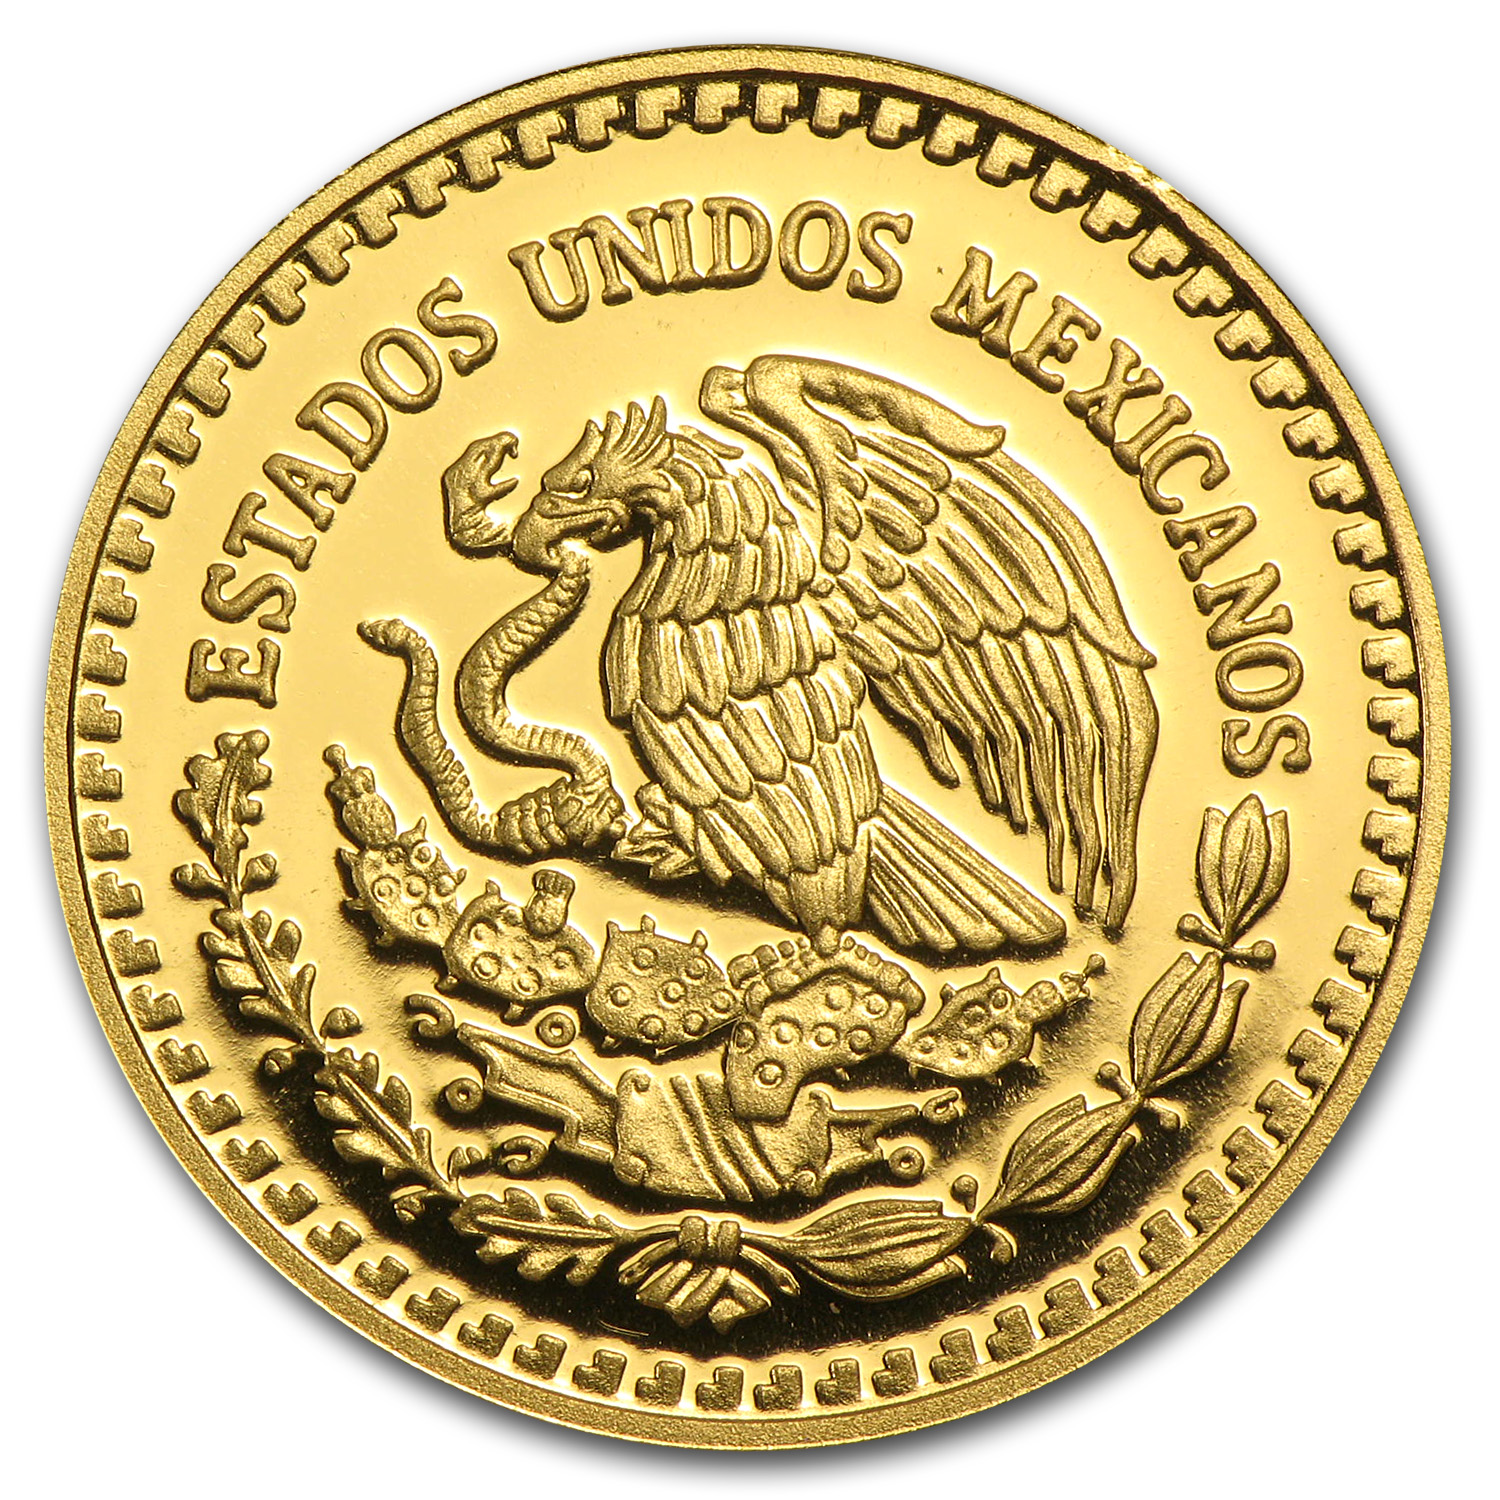 2011 1/4 oz Gold Mexican Libertad - Proof (In Capsule)